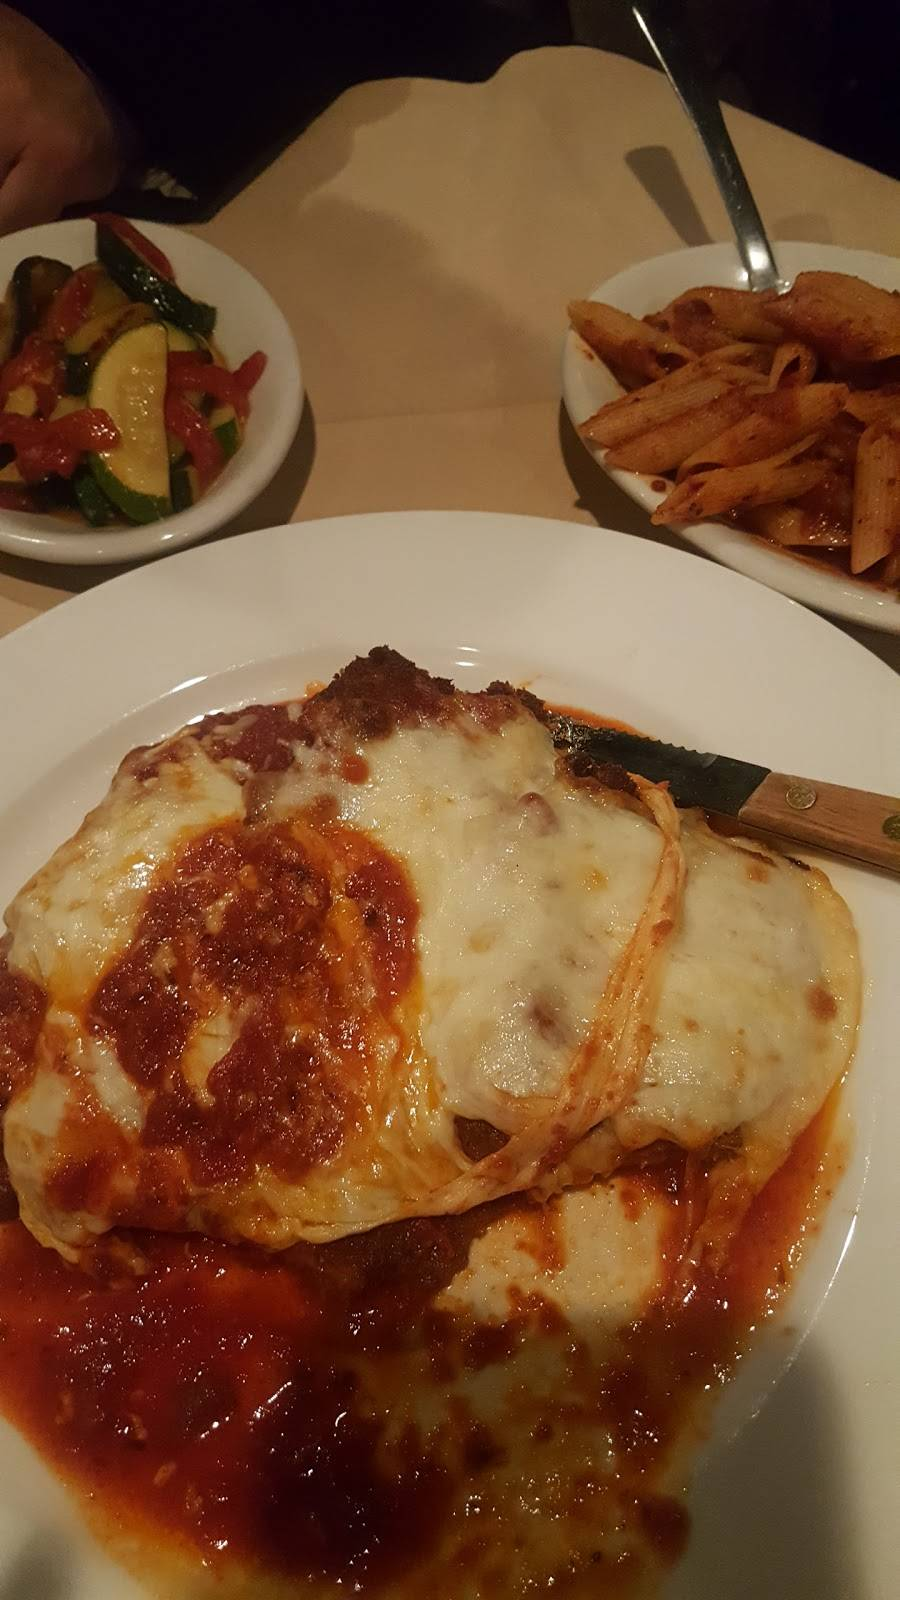 Cafe Italia | restaurant | 1723 River Rd, Pittston, PA 18640, USA | 5702997724 OR +1 570-299-7724